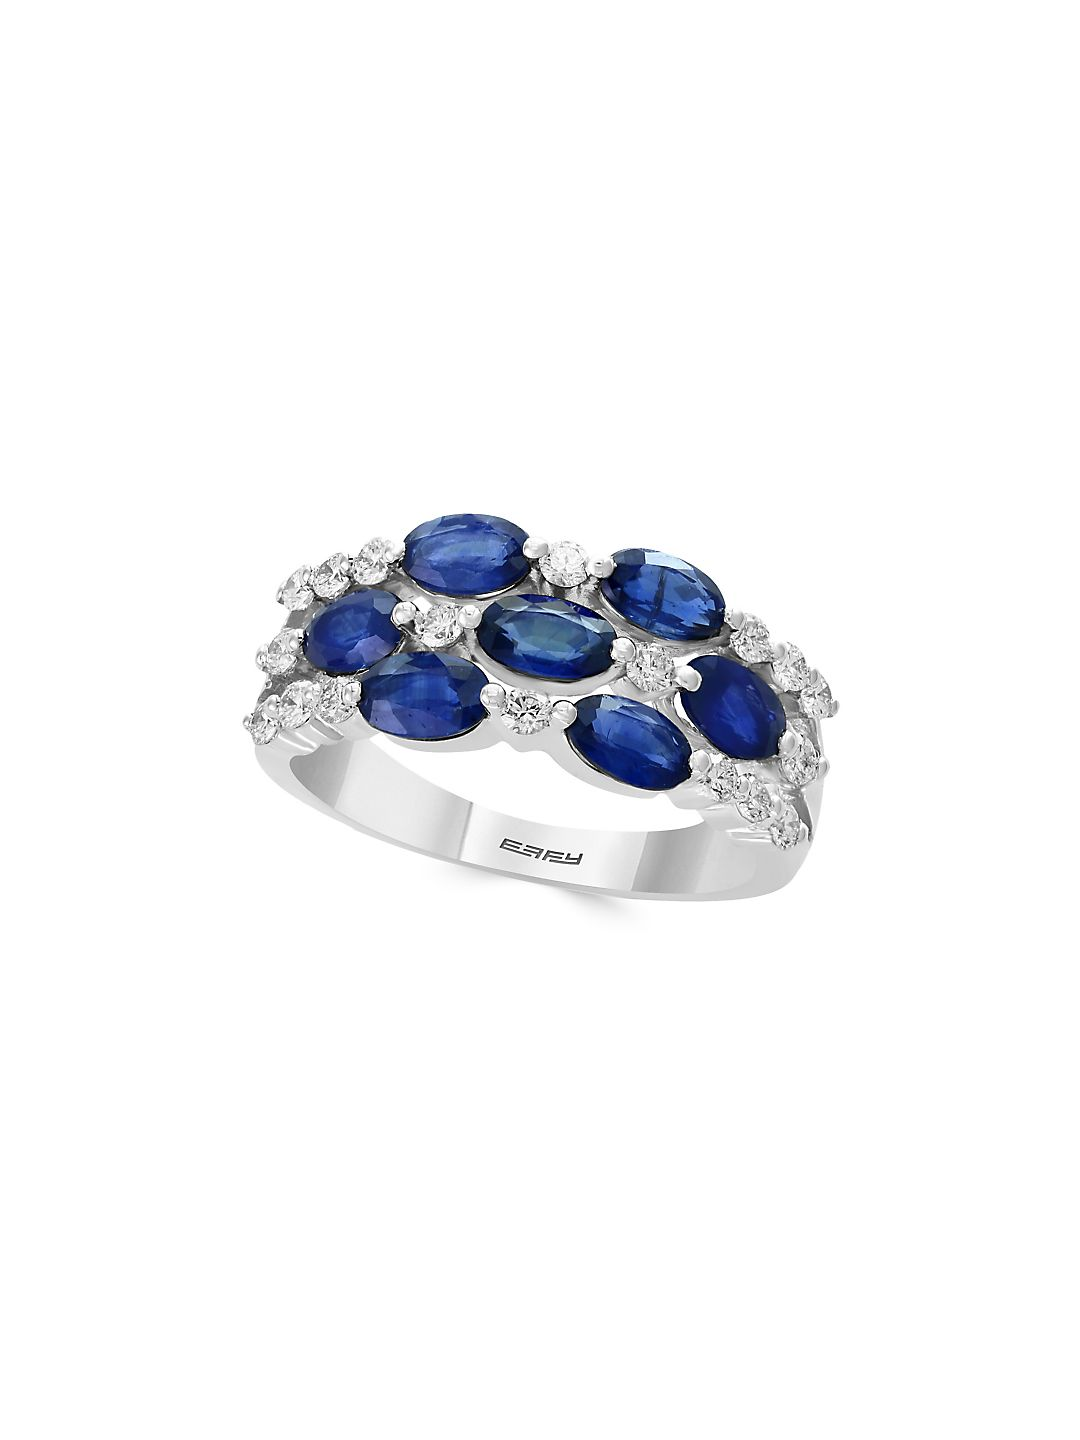 Royale Bleu Diamond, Natural Sapphire and 14K White Gold Ring